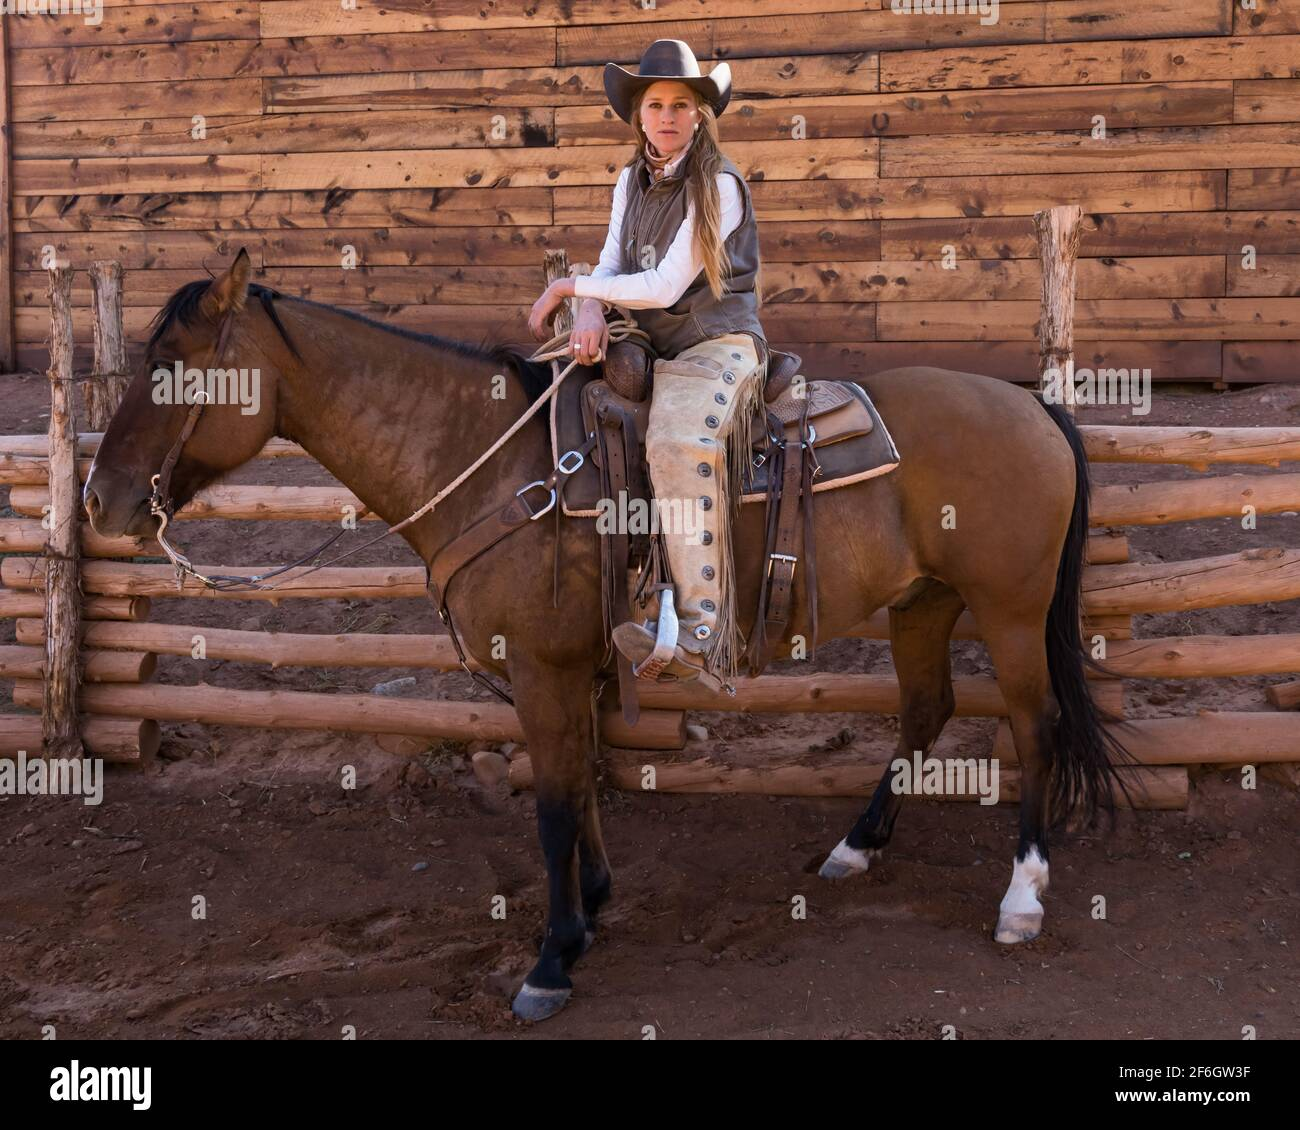 A young attractive working cowgirl wrangler poses on her horse on a ranch near Moab, Utah.  She wears leather chaps to protect her from thorny brush w Stock Photo